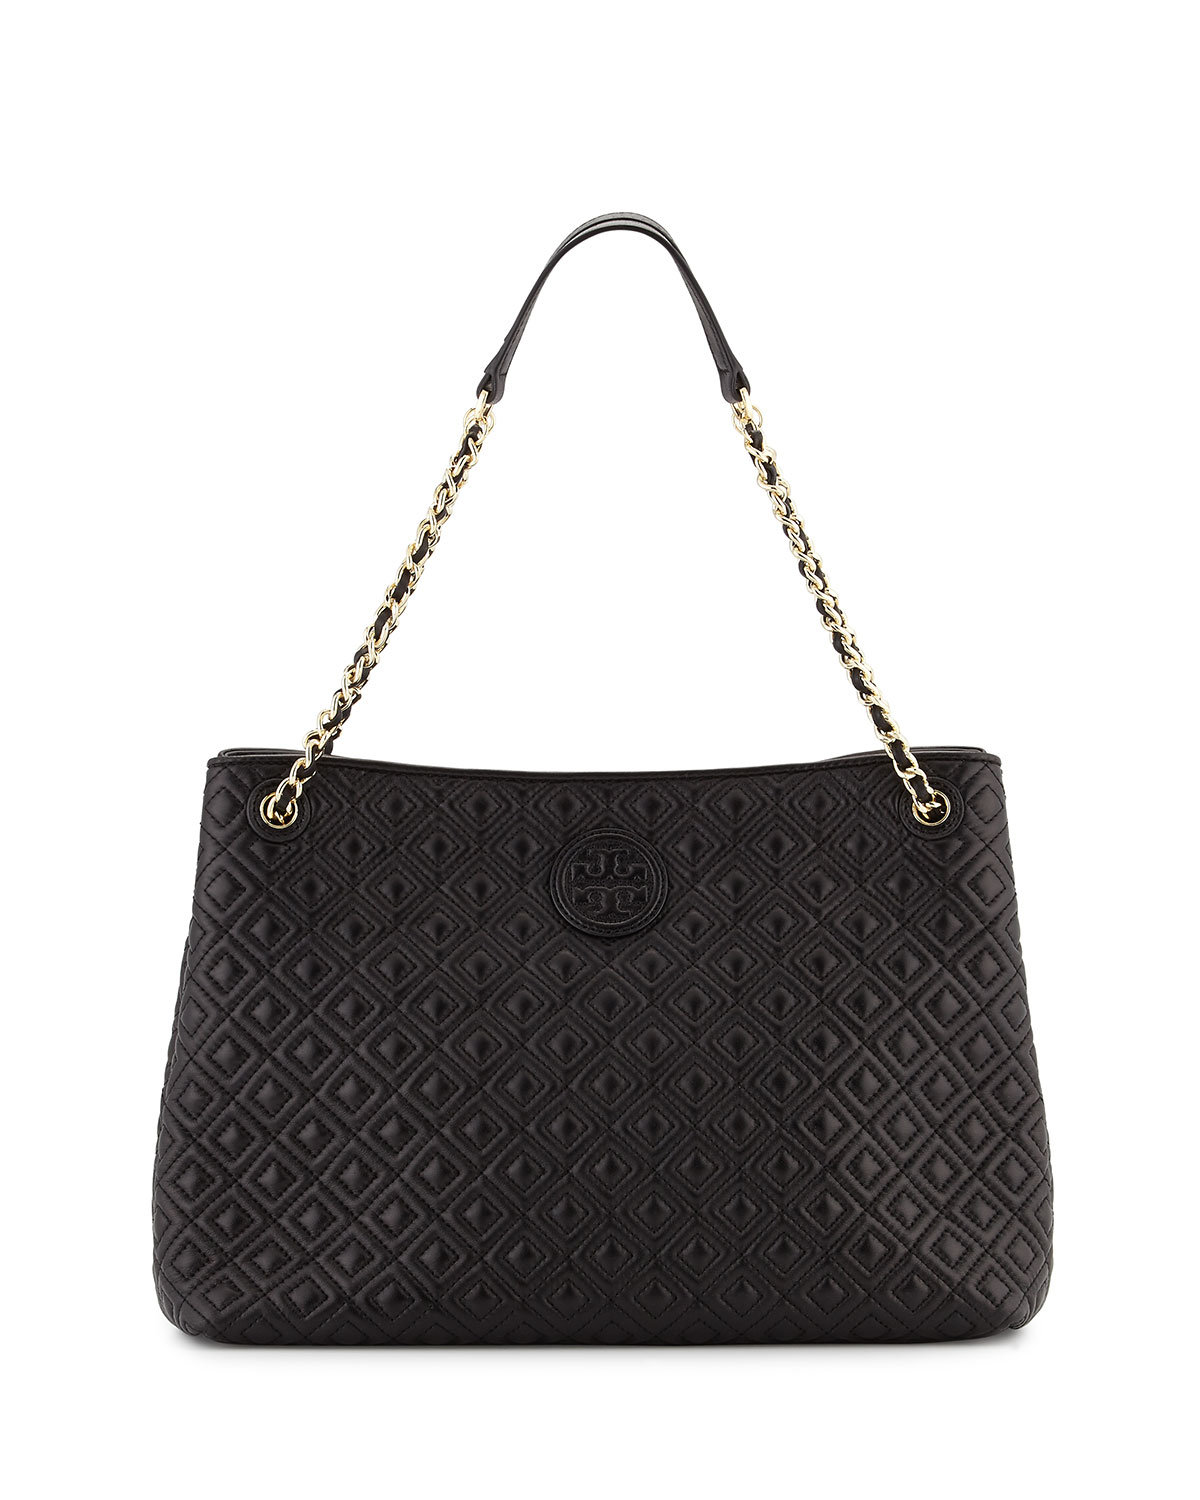 Tory Burch Marion Chain Strap Shoulder Slouch Bag In Black